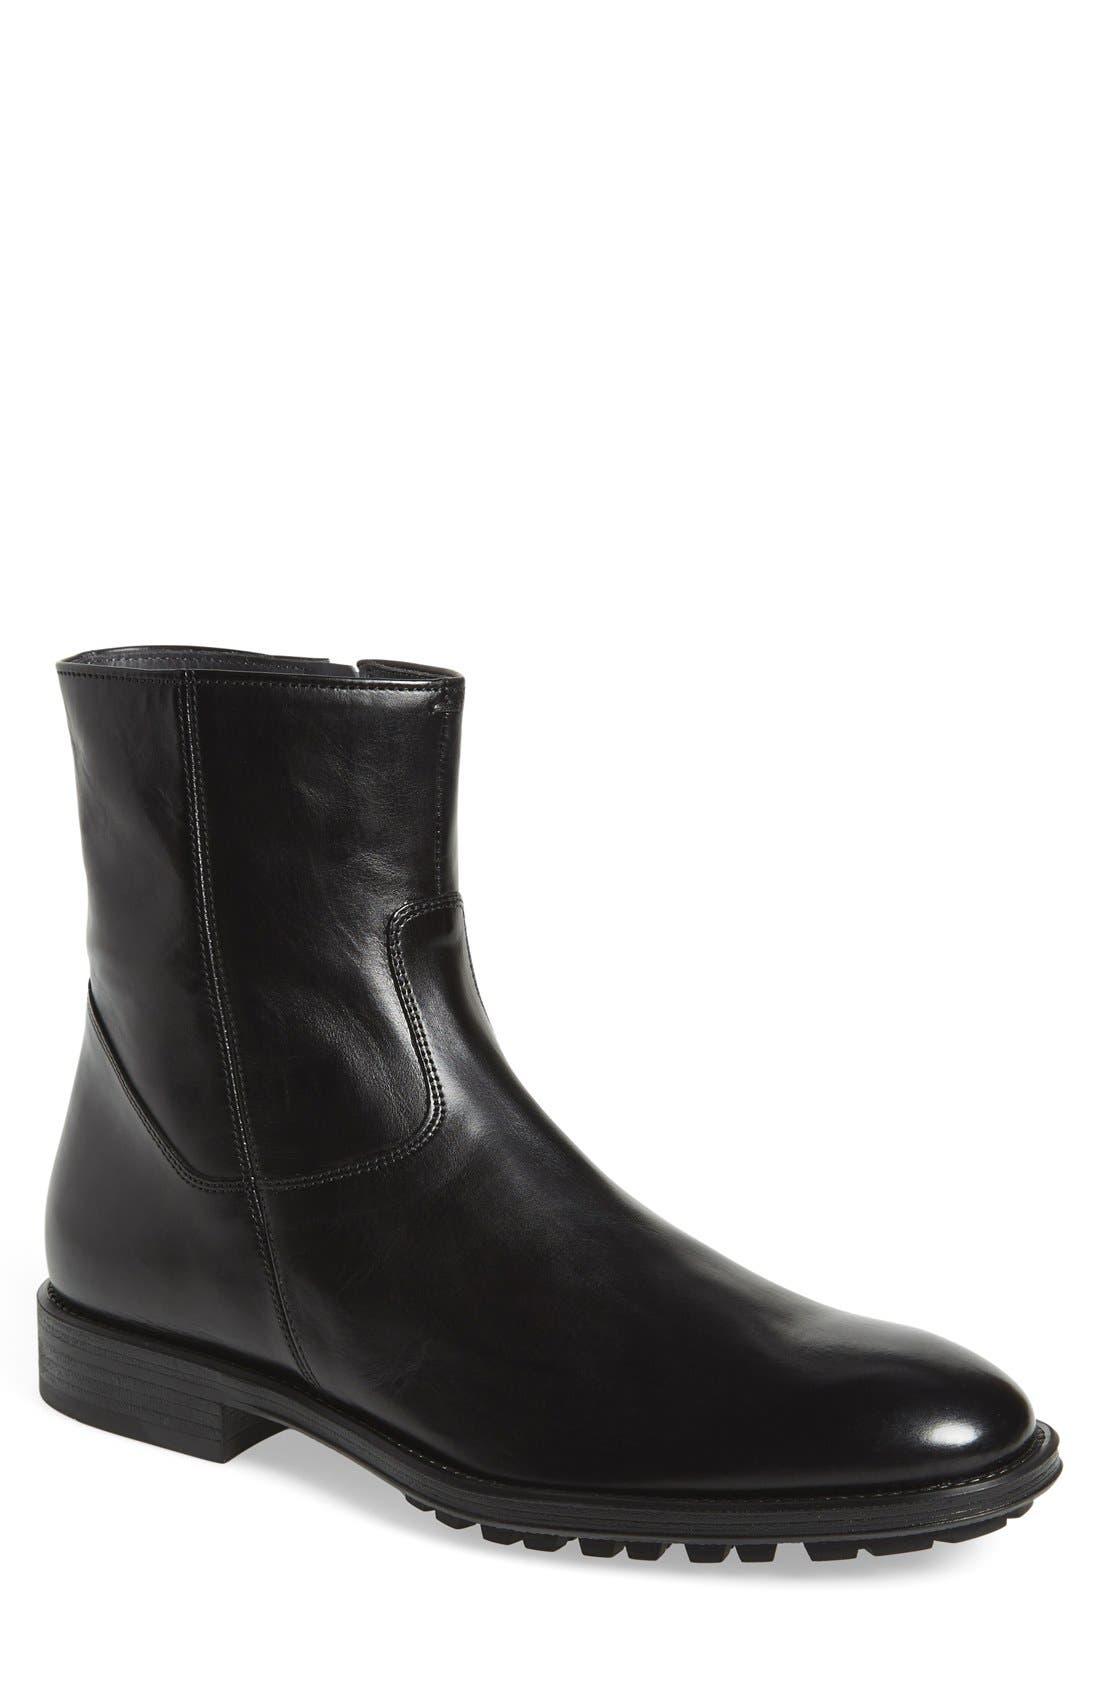 New York Boots